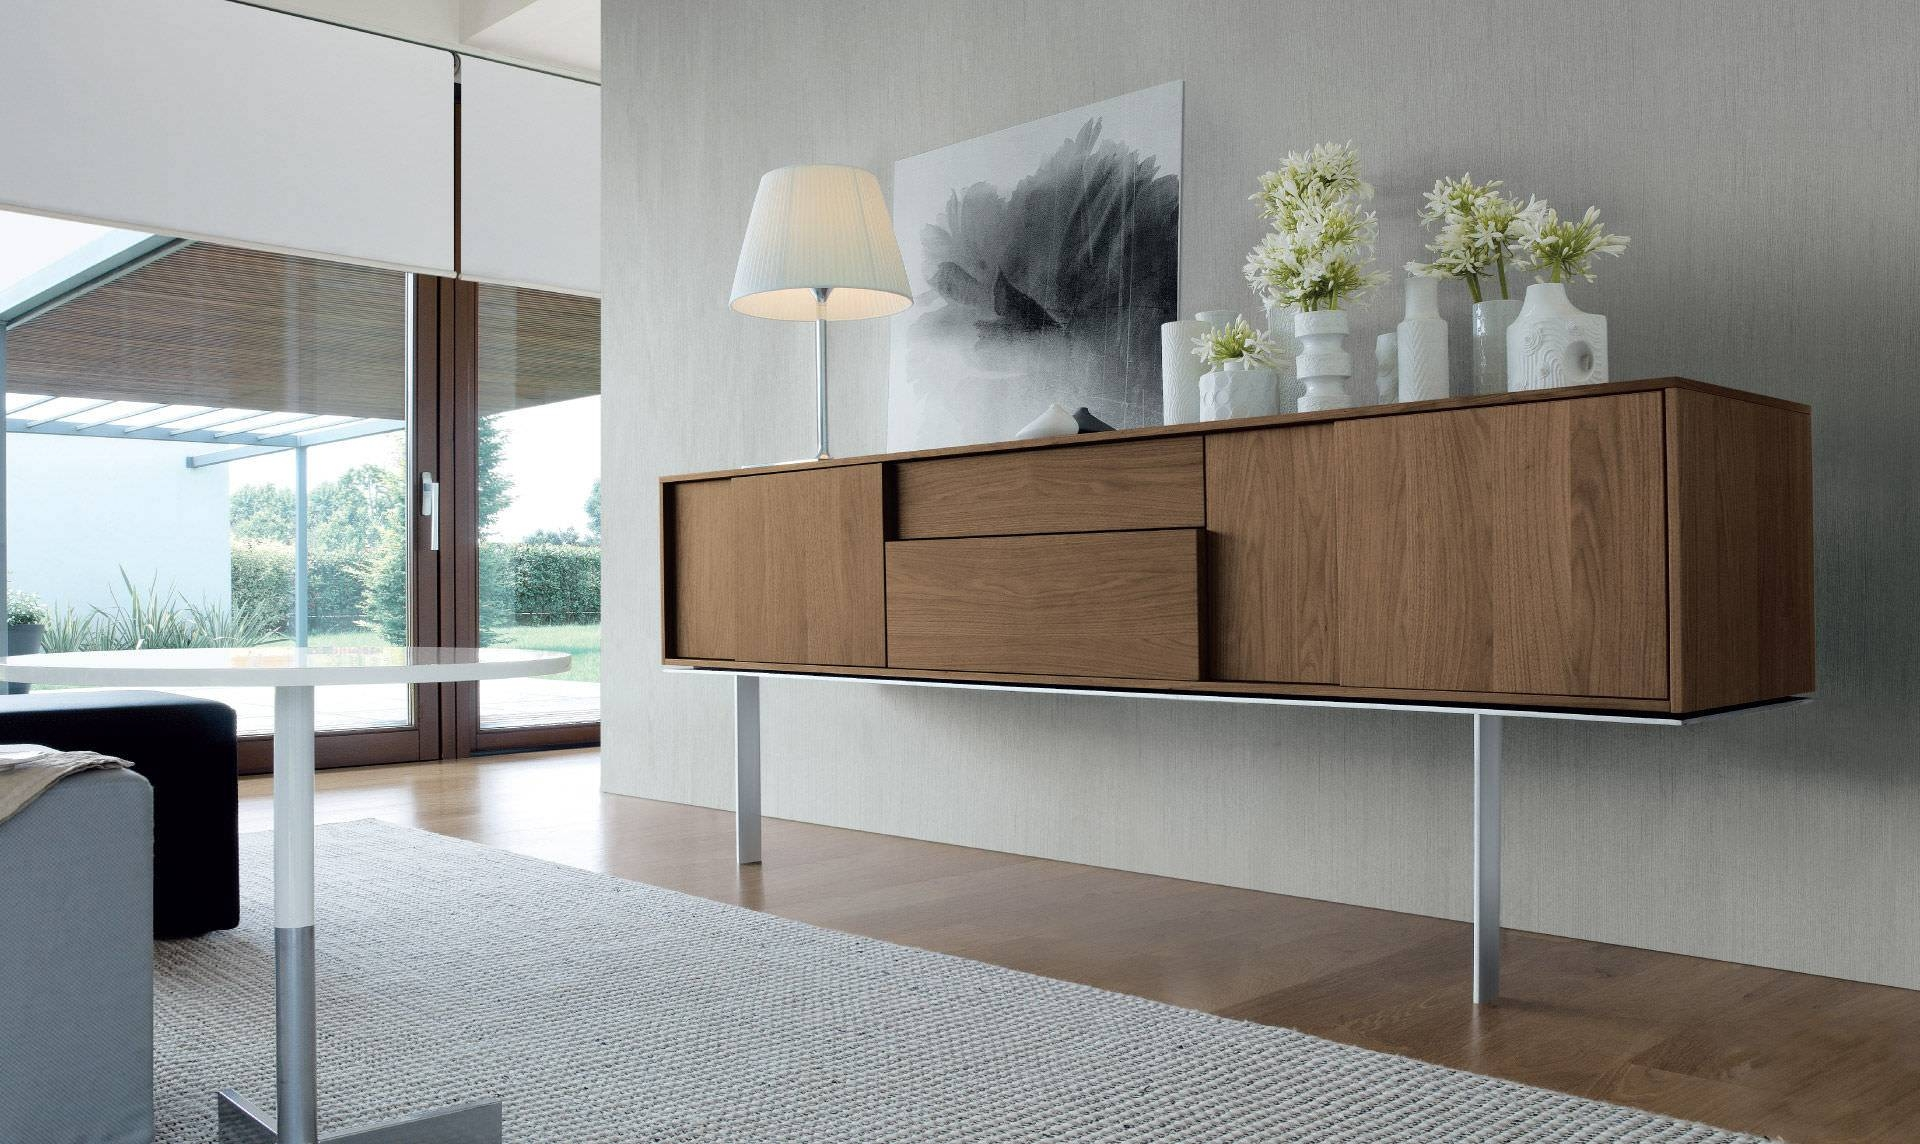 Sideboard With Long Legs / Contemporary / Wooden - Framesergio in Contemporary Wood Sideboards (Image 22 of 30)